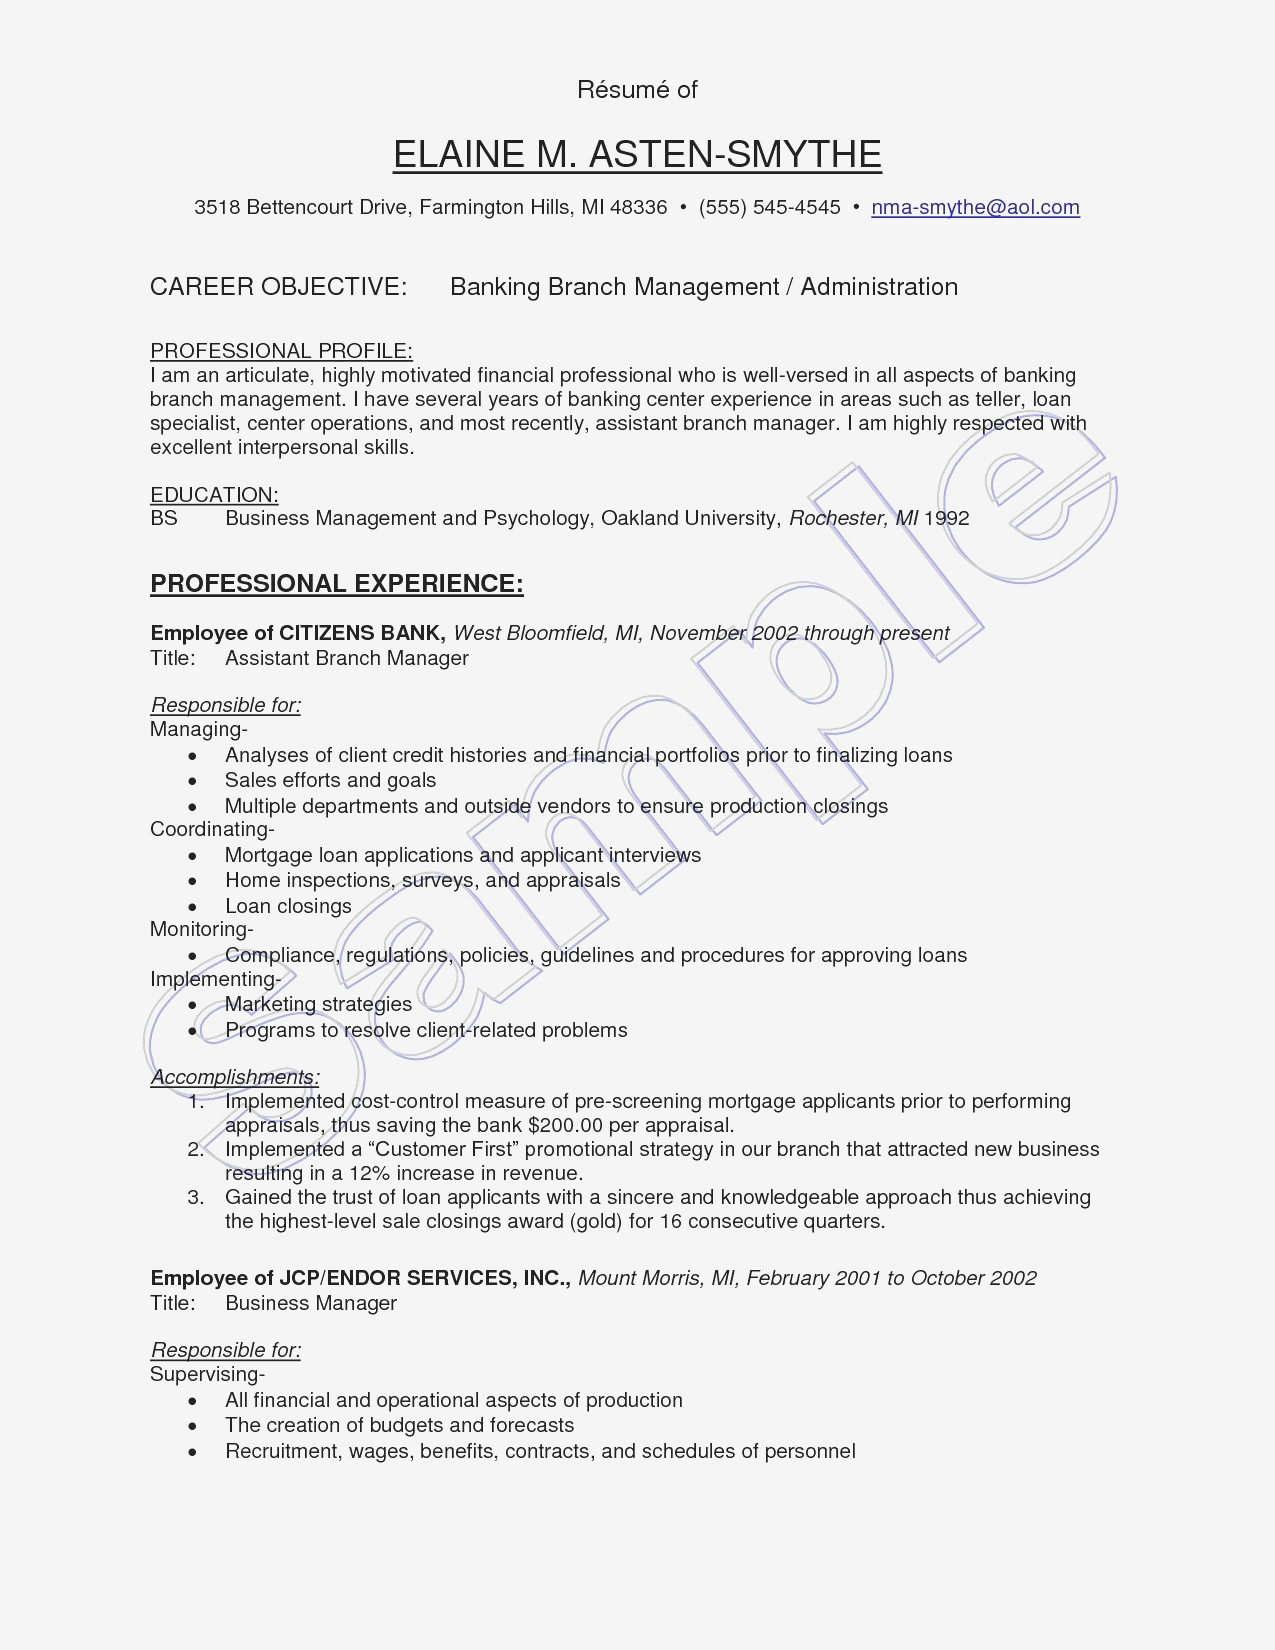 Restaurant Manager Resume Examples - Sample Restaurant Resume